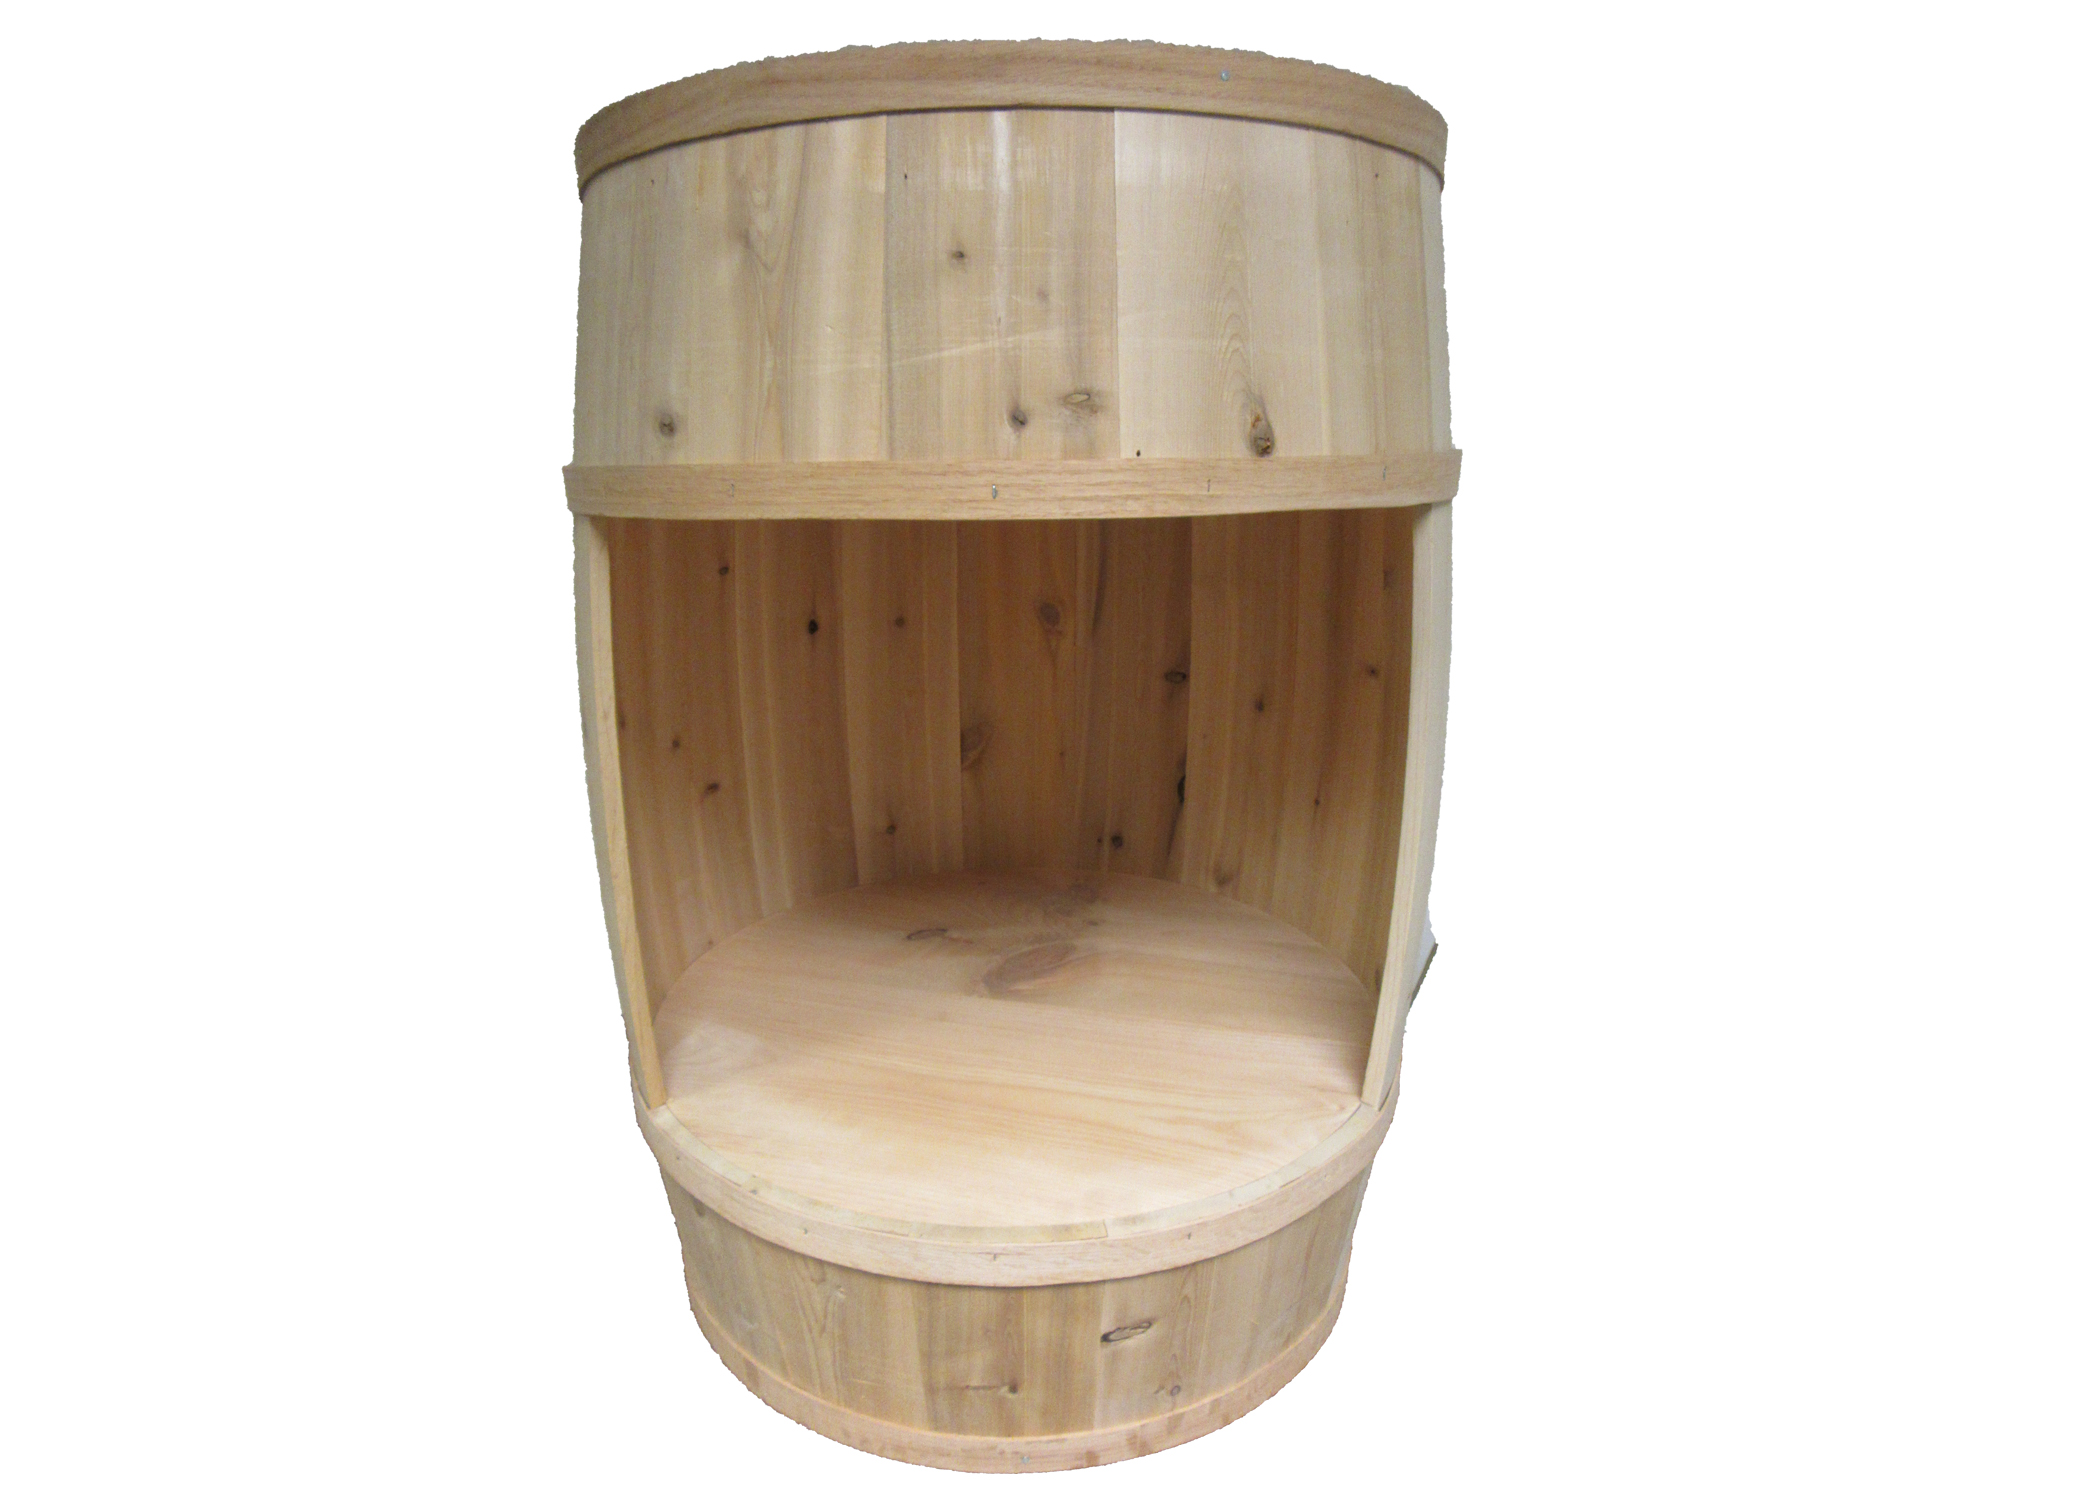 All Maine Bucket BD203 18 x 30 Inch Cut Out Display Barrel